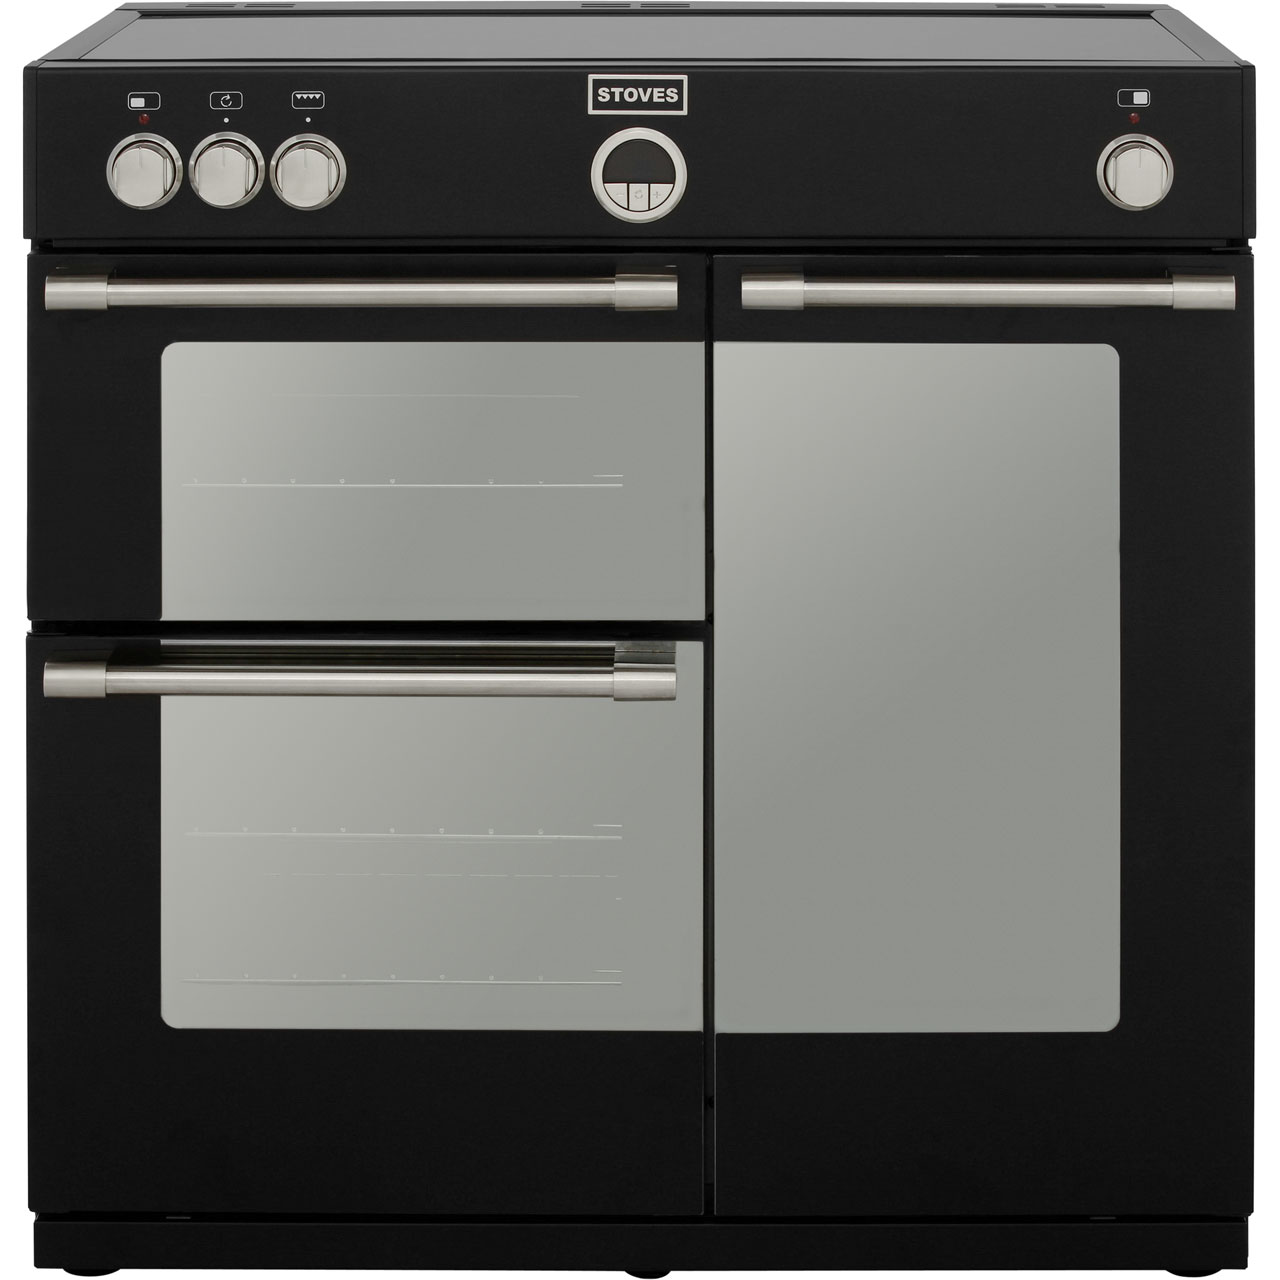 Stoves STERLING900Ei 90cm Electric Range Cooker Review